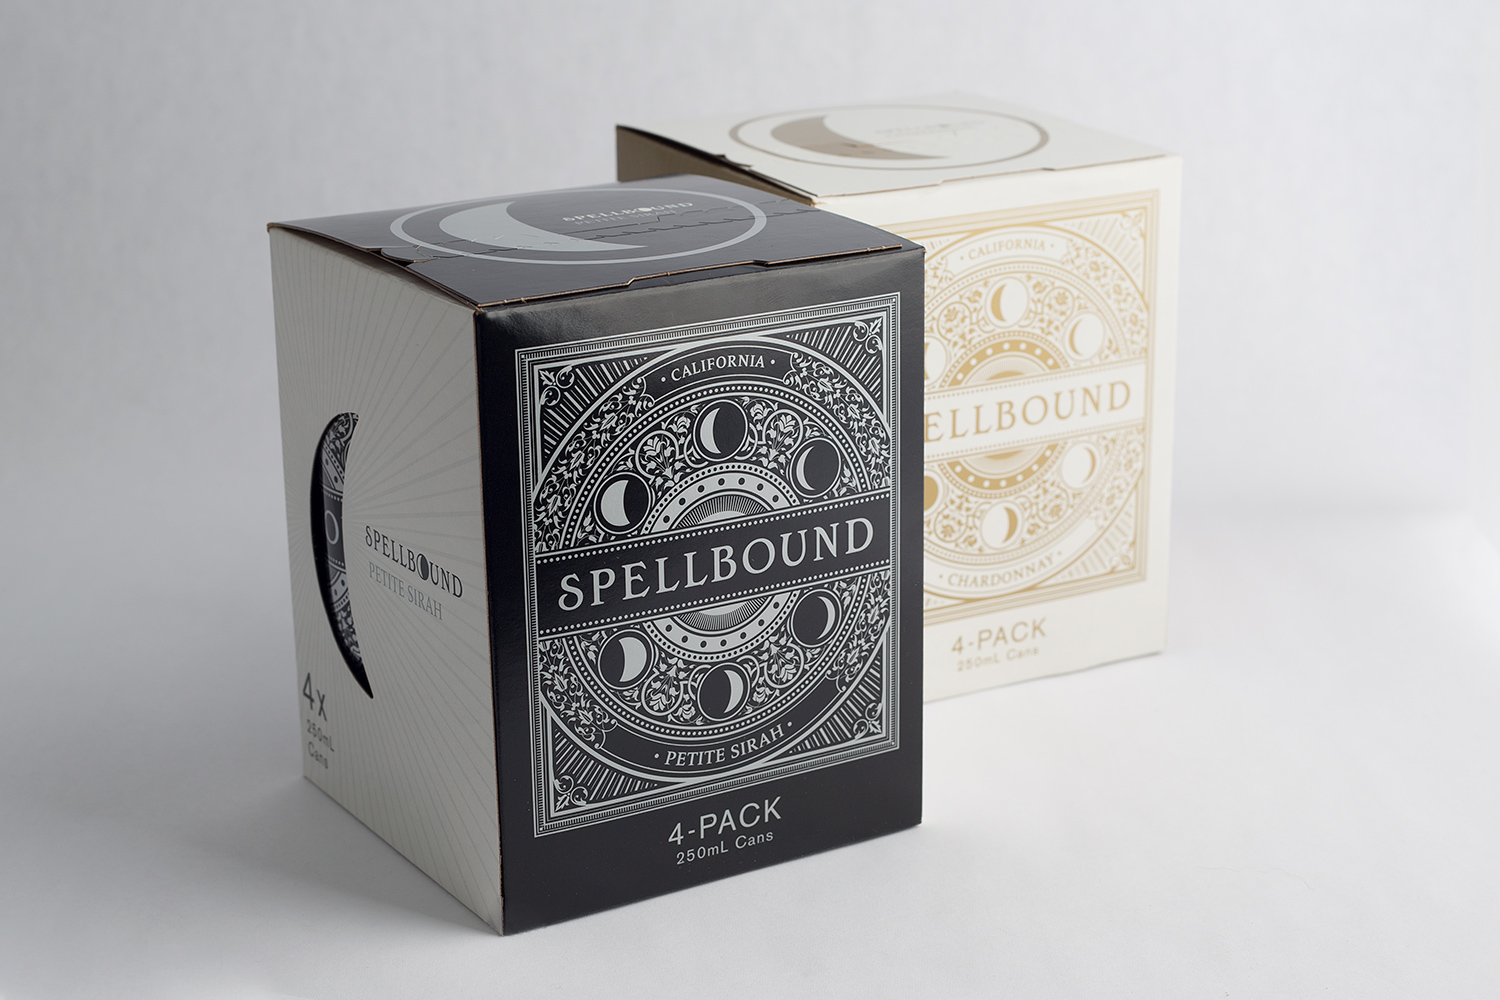 Spellbound Merlot and Chardonnay Wine in Cans Folded Carton Box